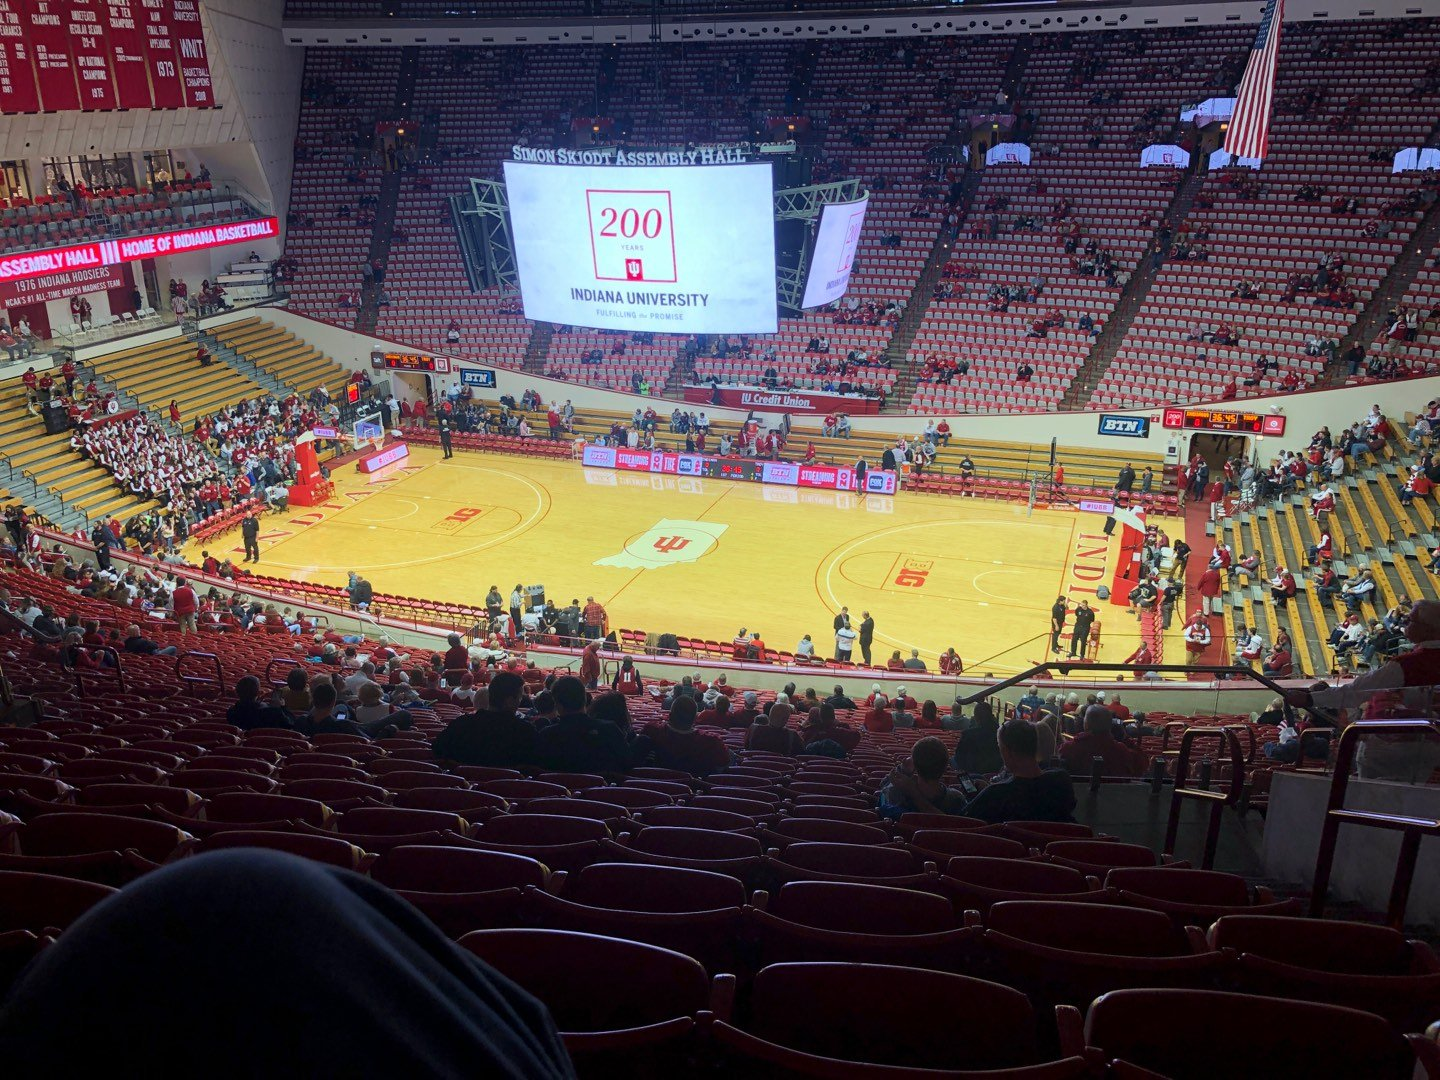 Simon Skjodt Assembly Hall Section H Row 34 Seat 9